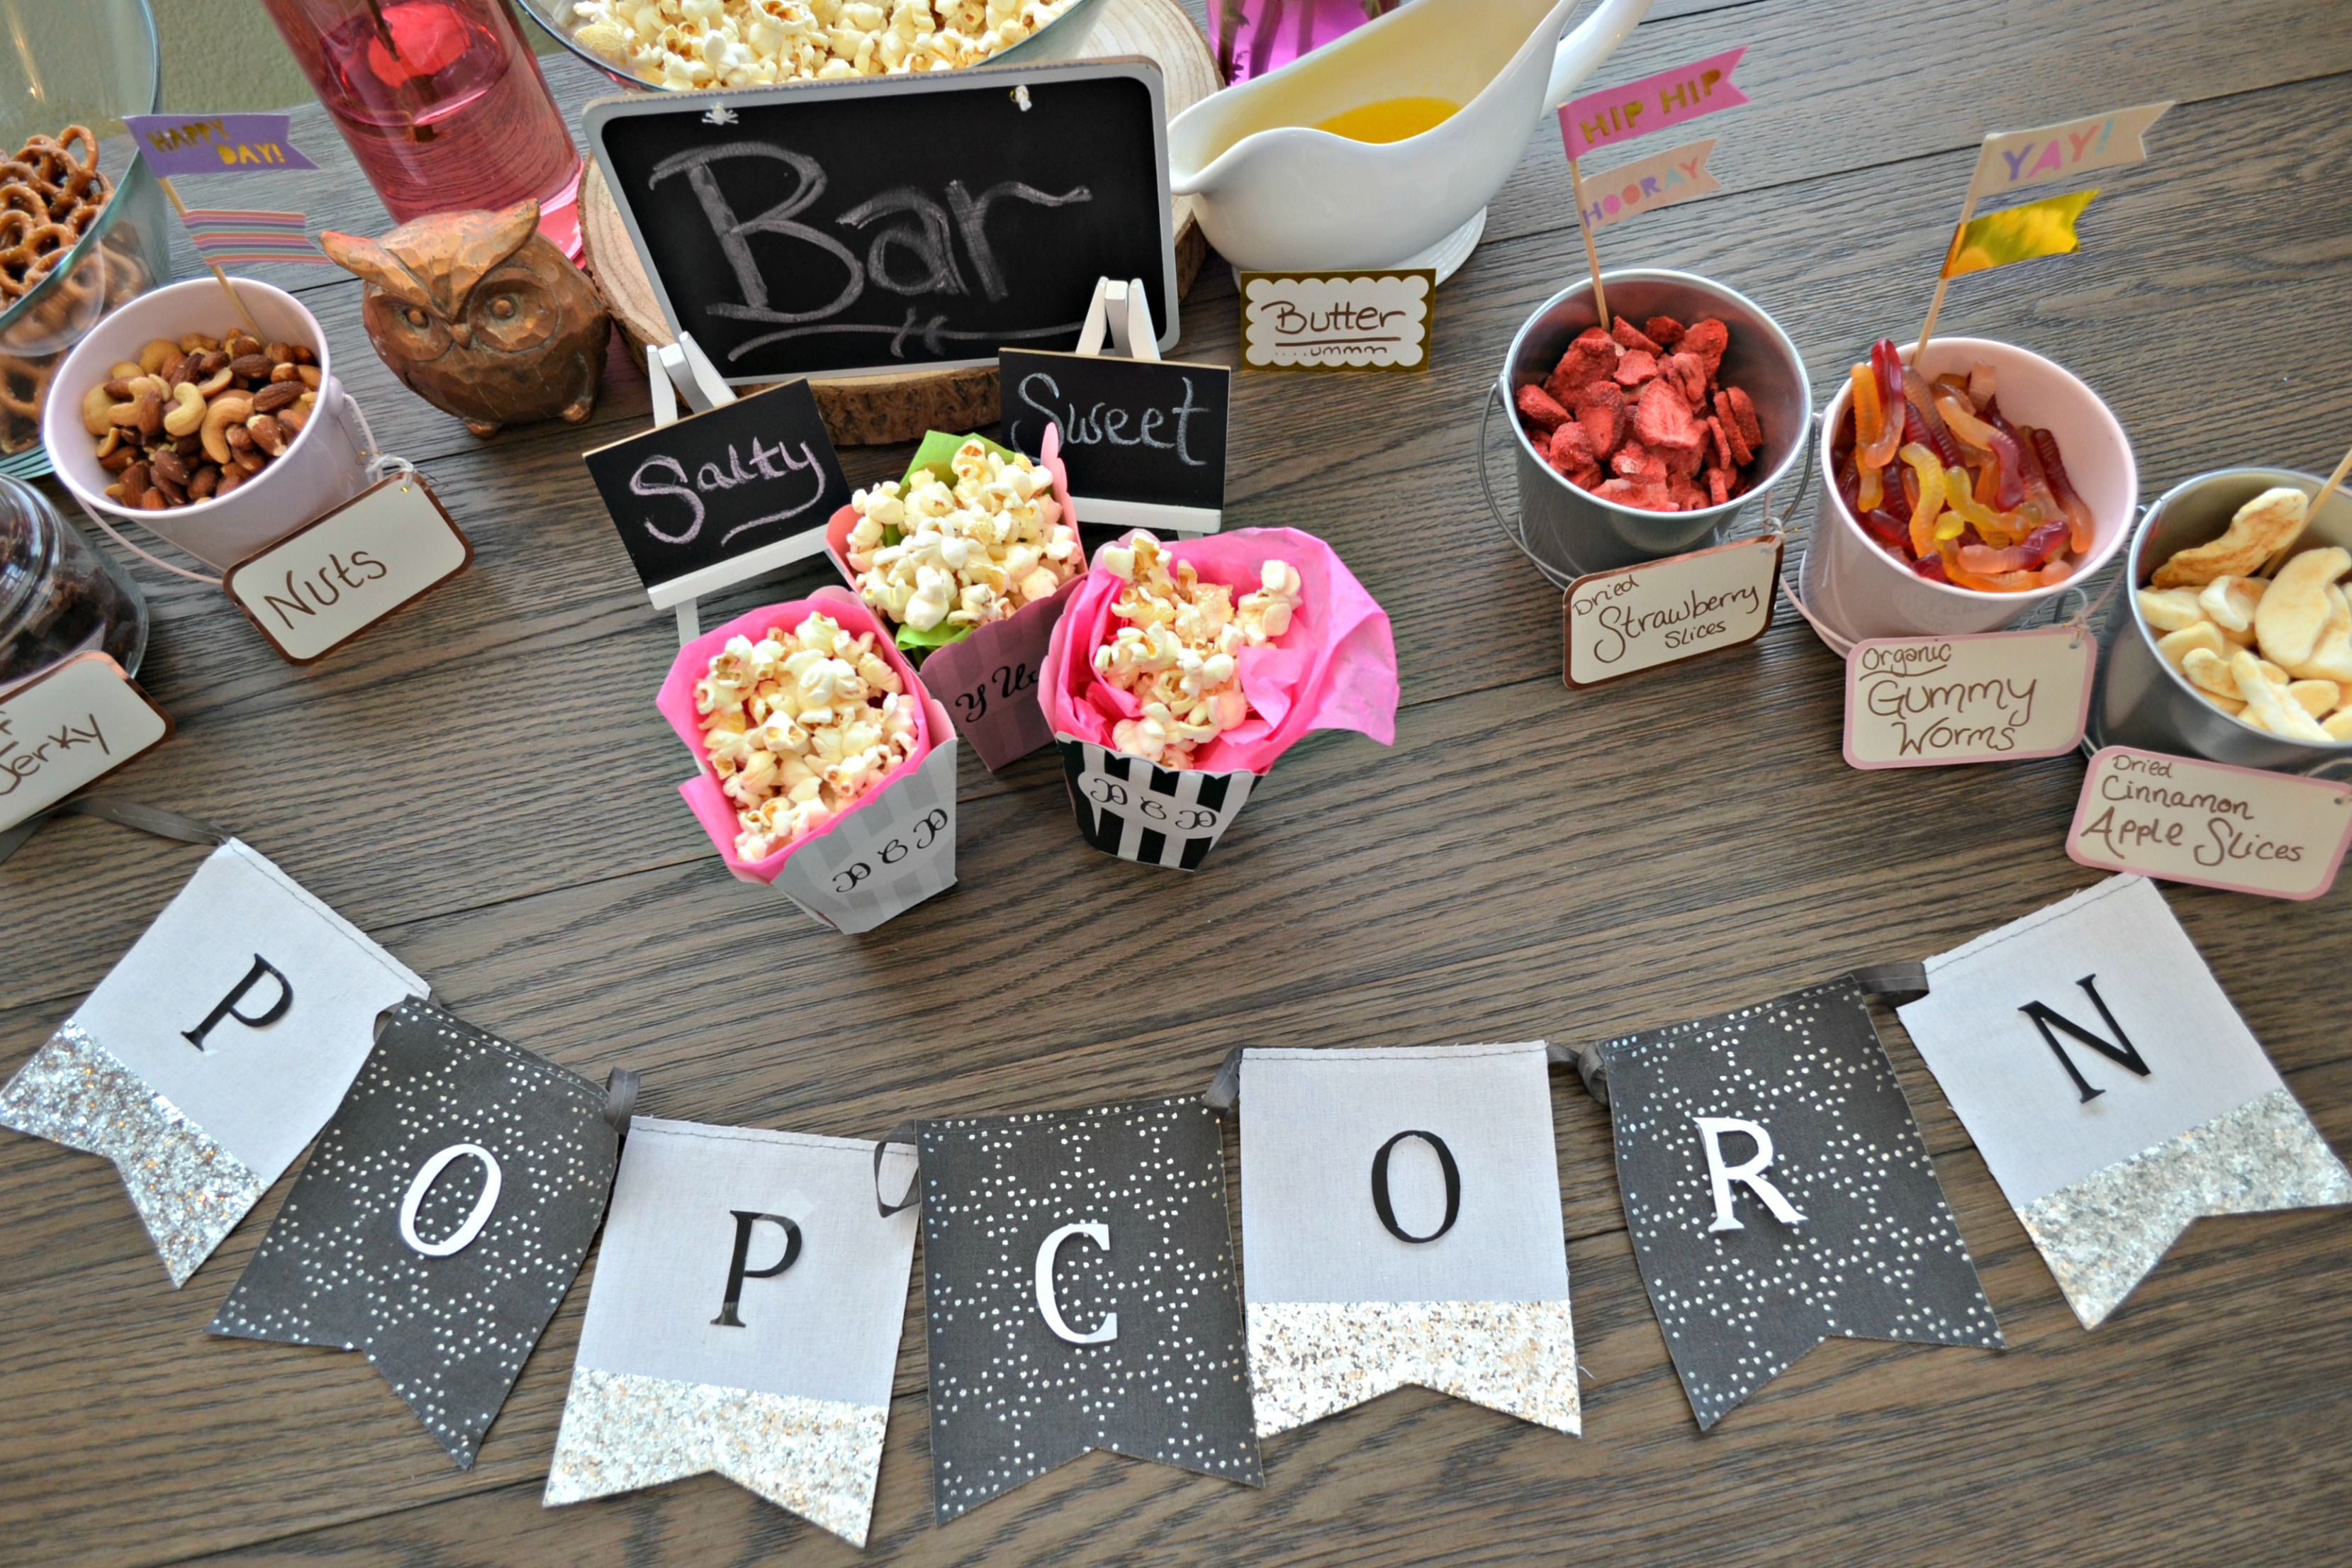 Popcorn Bar station complete with all you need for a fun night of snacking